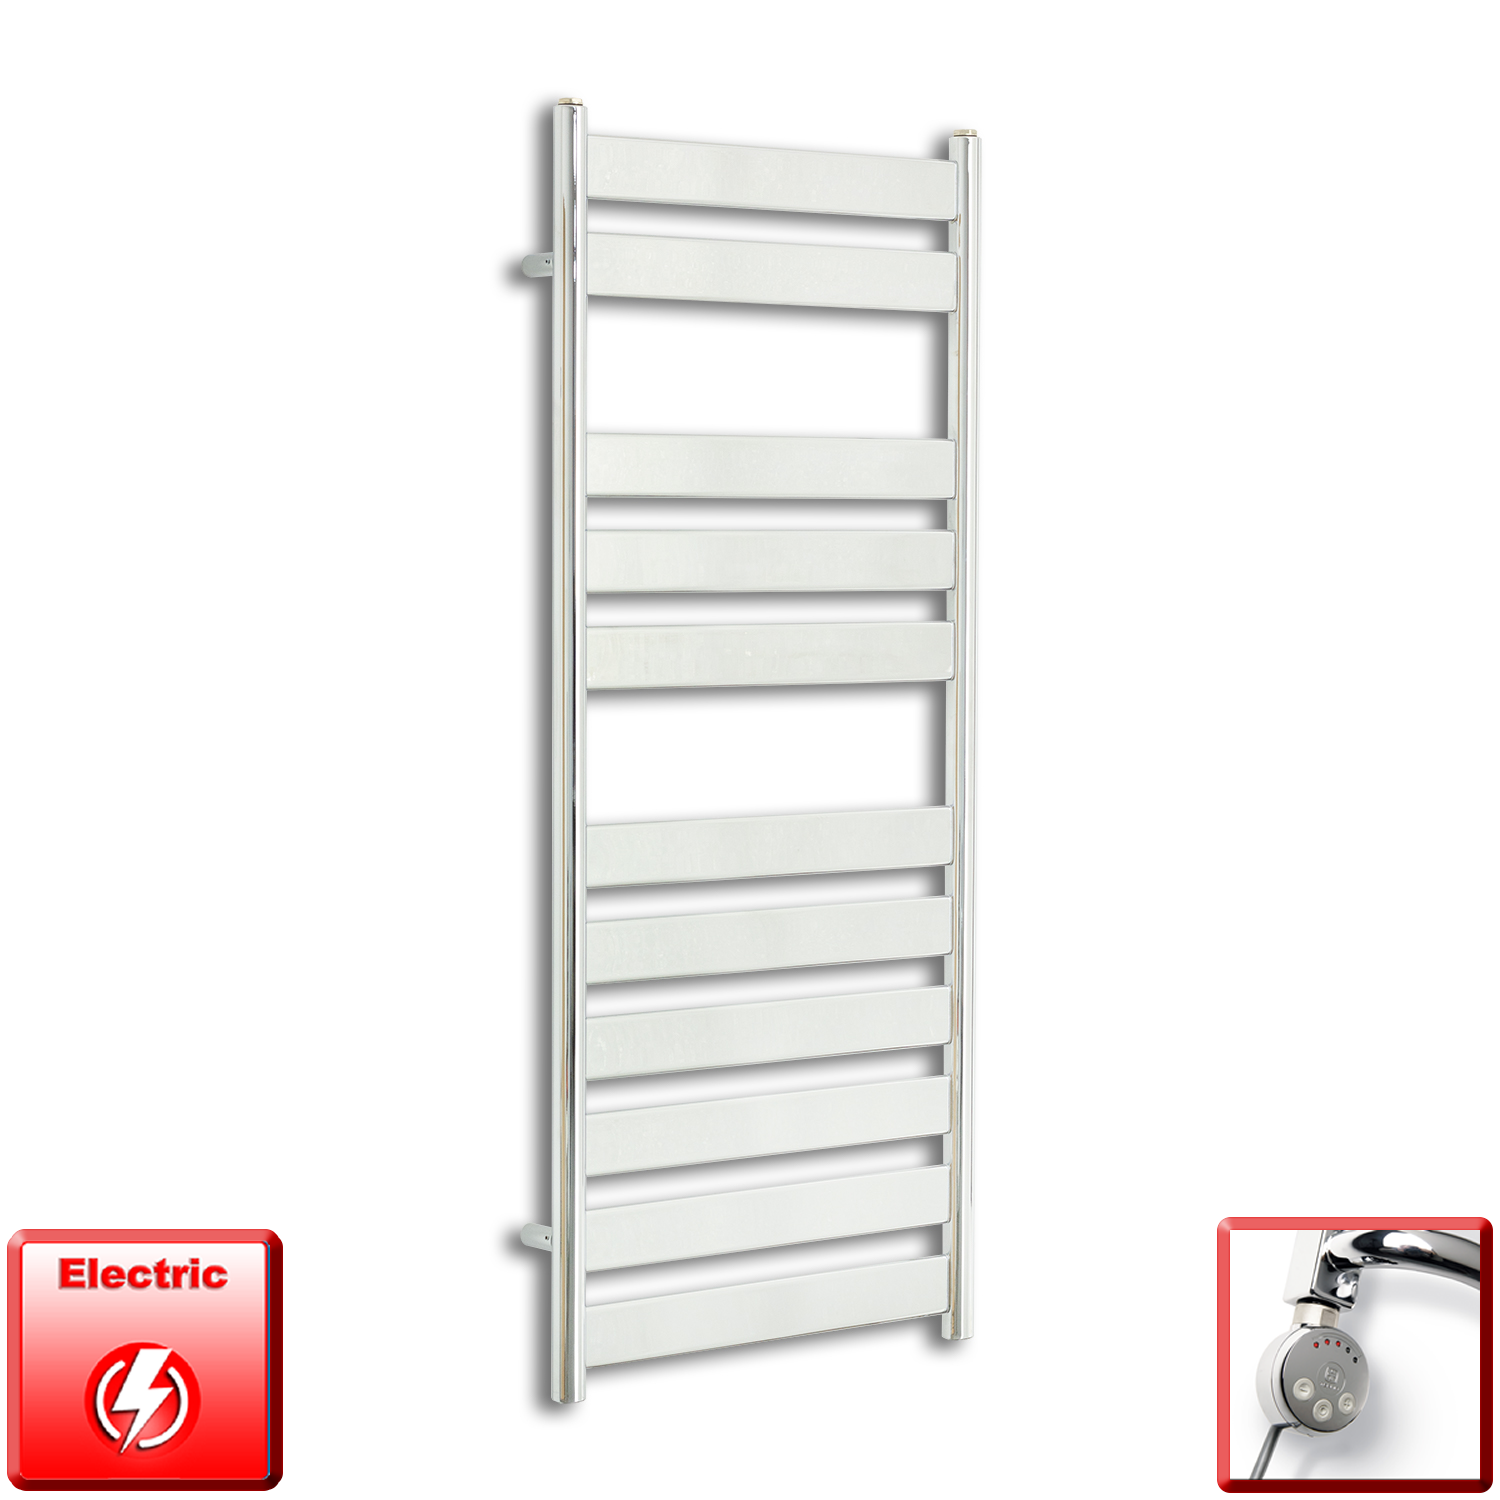 500mm Wide 1200mm High Pre-Filled Chrome Electric Towel Rail Radiator With Thermostatic MEG Element